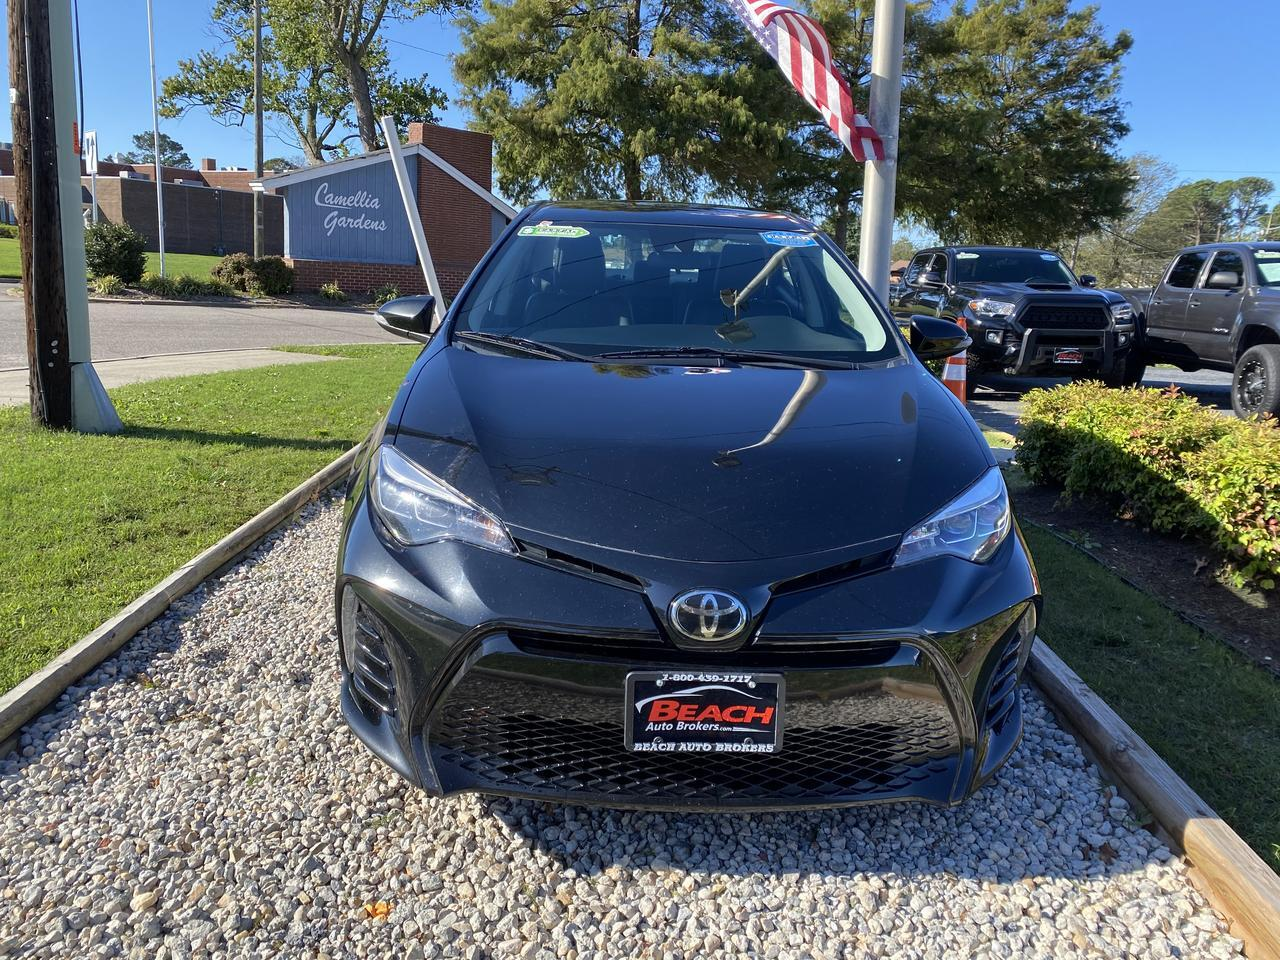 2018 TOYOTA COROLLA SE, WARRANTY, LEATHER, BACKUP CAM, PARKING SENSORS, AUX/USB PORT, SIRIUS RADIO, BLUETOOTH, 1 OWNER! Norfolk VA